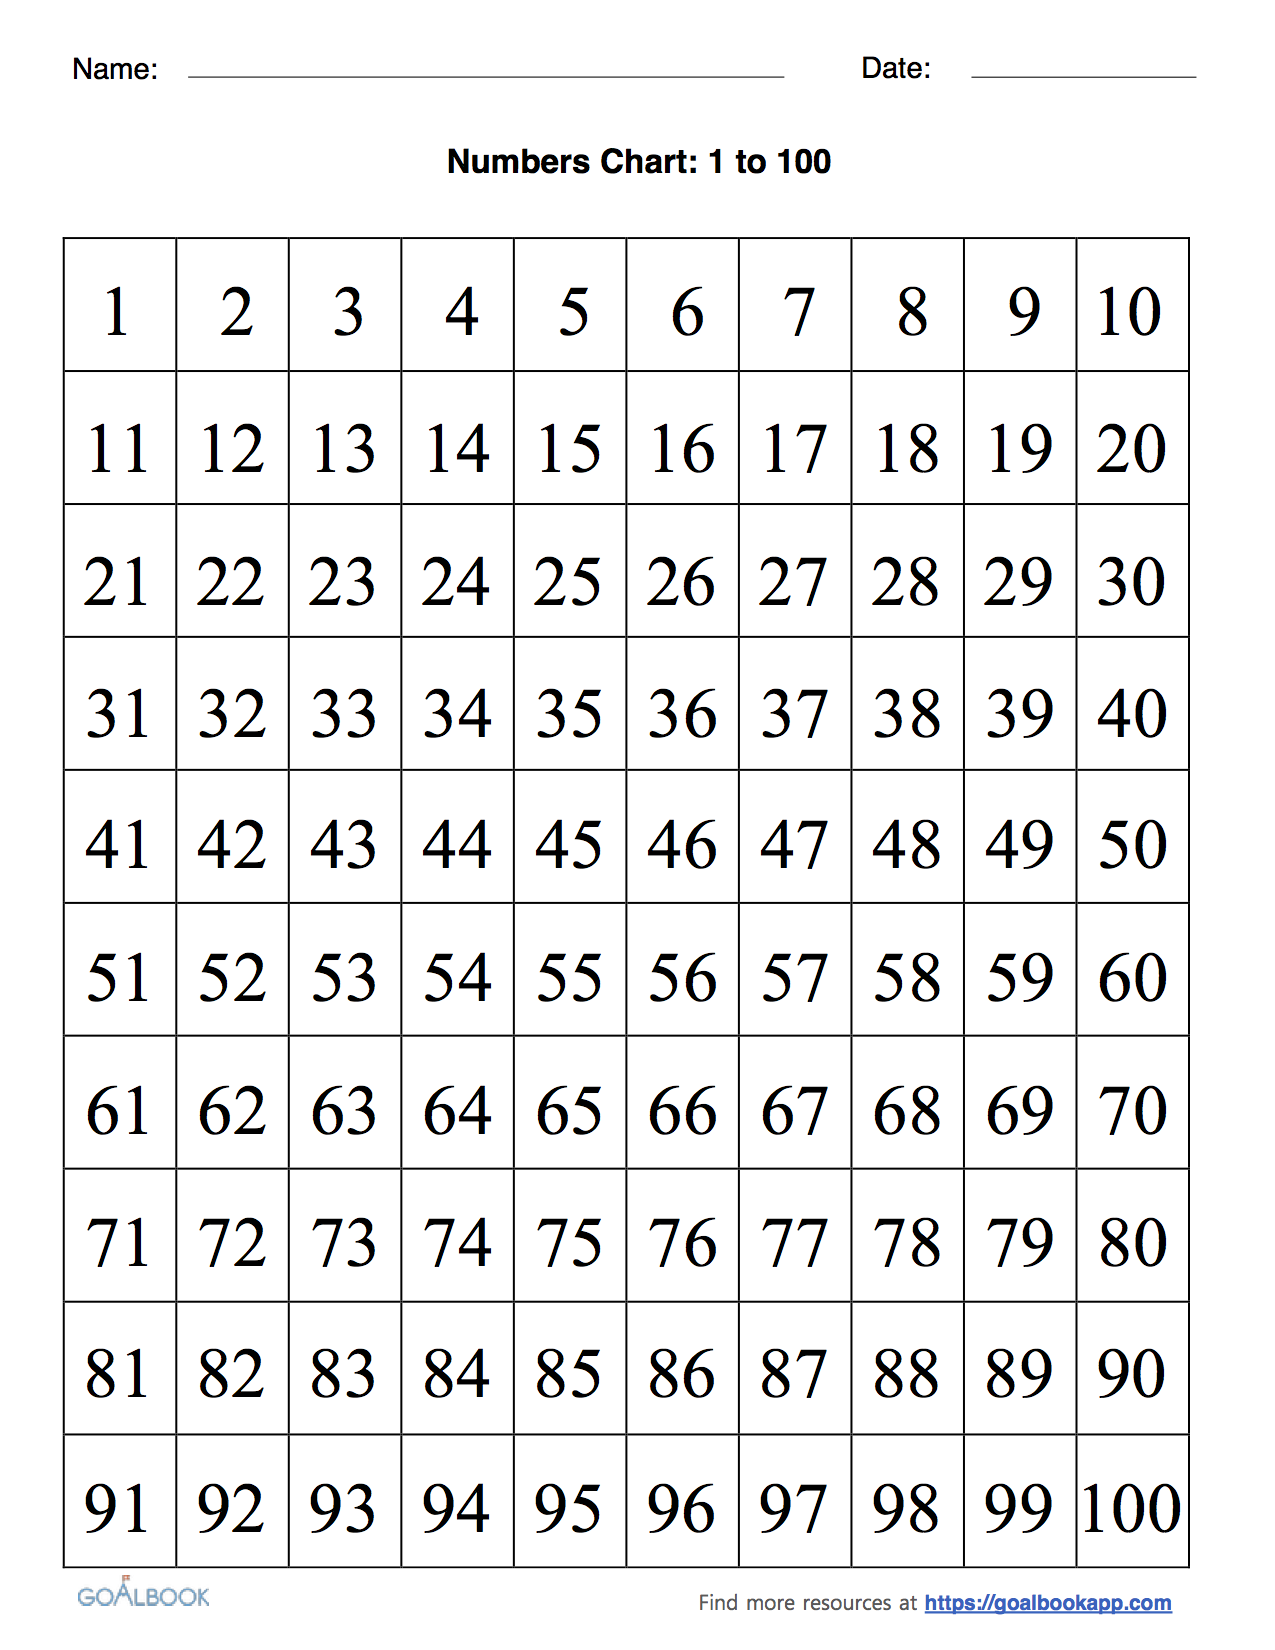 It is an image of Witty Printable 100 Number Chart